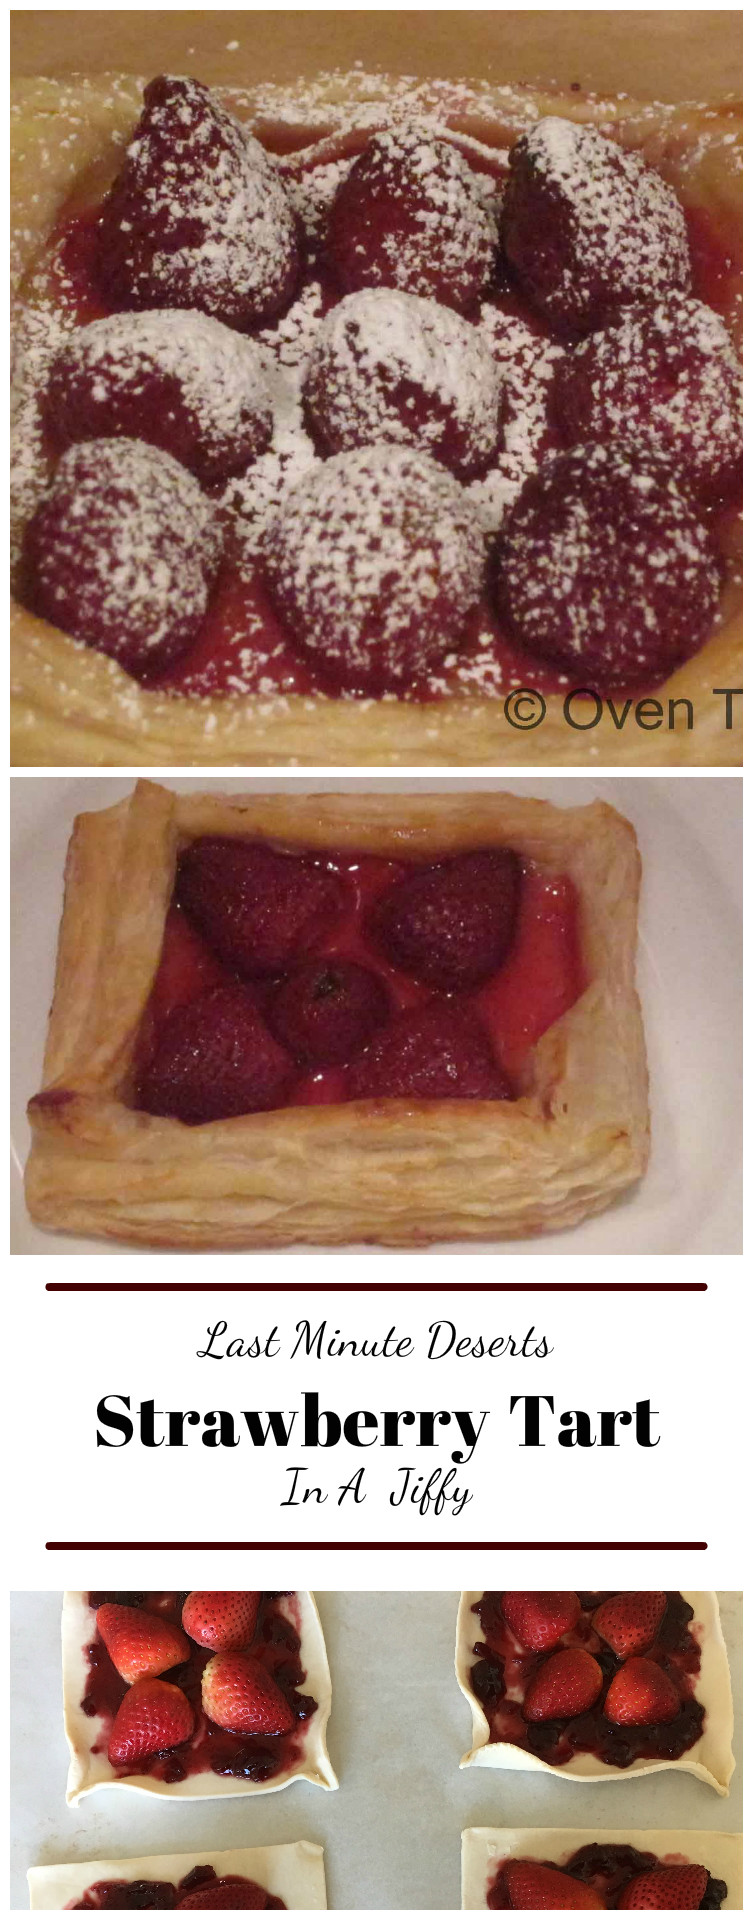 Strawberry Tart With Puff Pastry